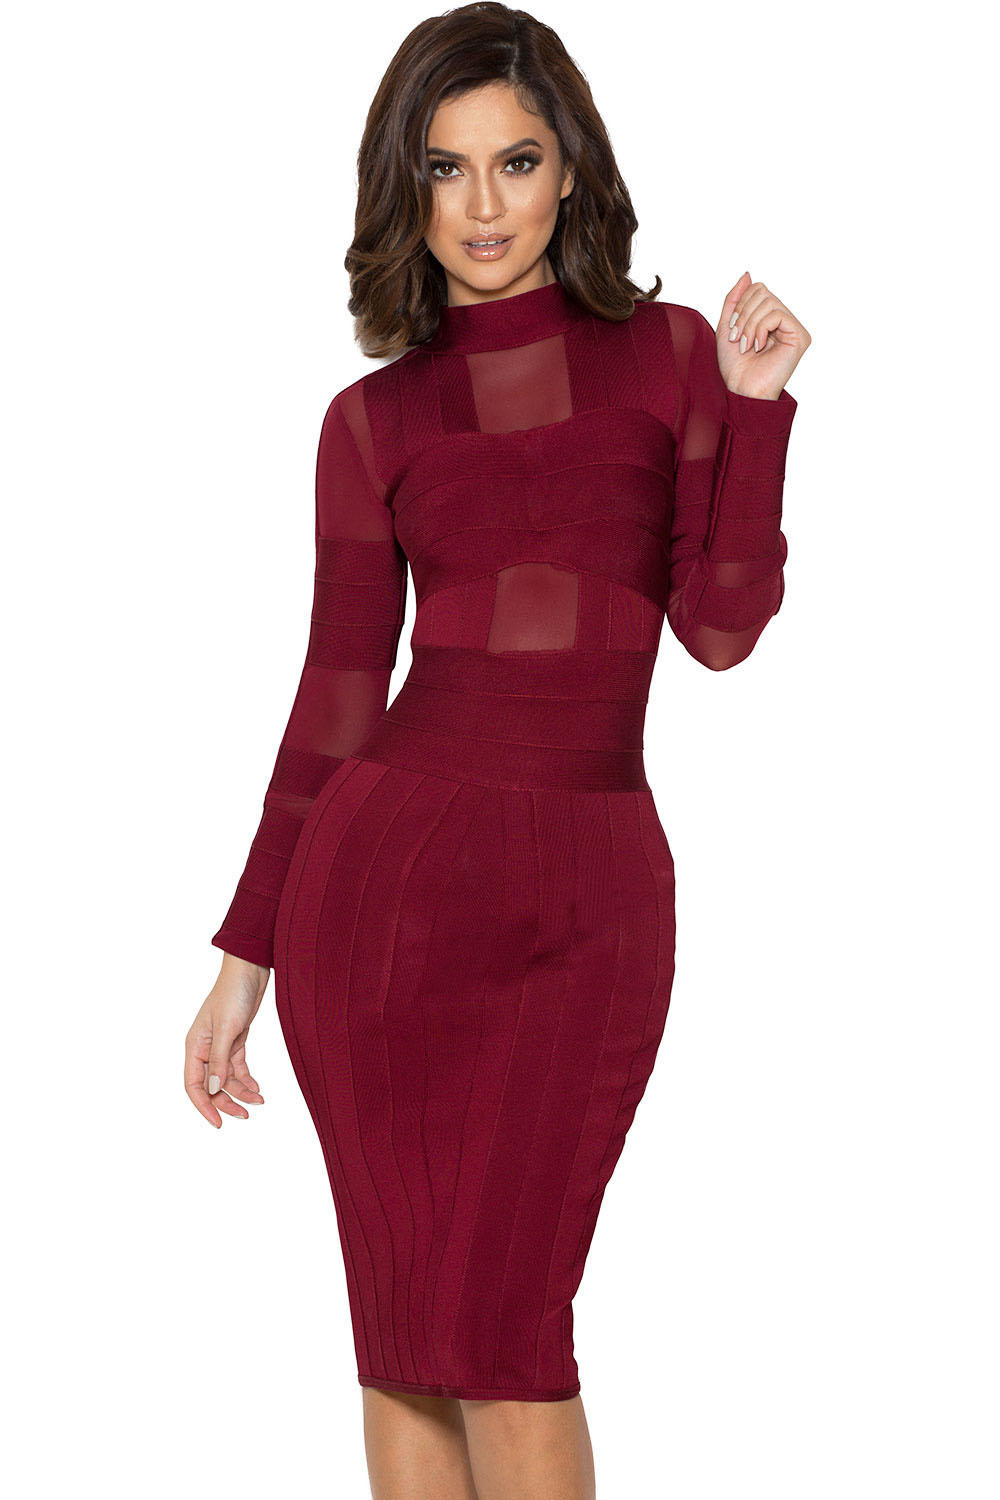 Elegant Long Sleeve Bandage Dress | Charming Wear